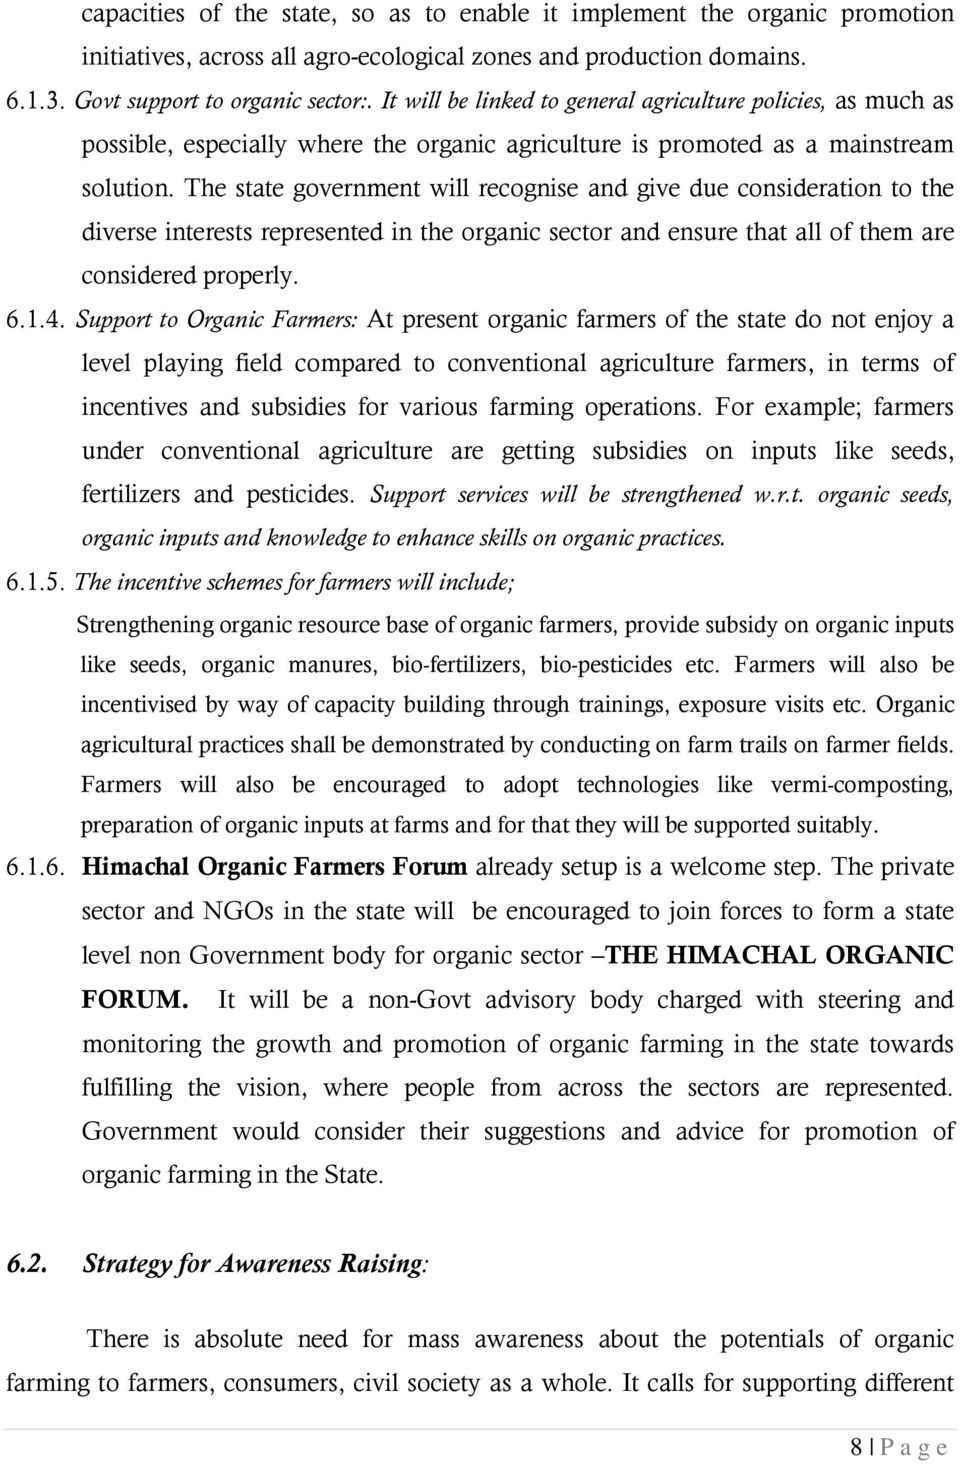 The state government will recognise and give due consideration to the diverse interests represented in the organic sector and ensure that all of them are considered properly. 6.1.4.